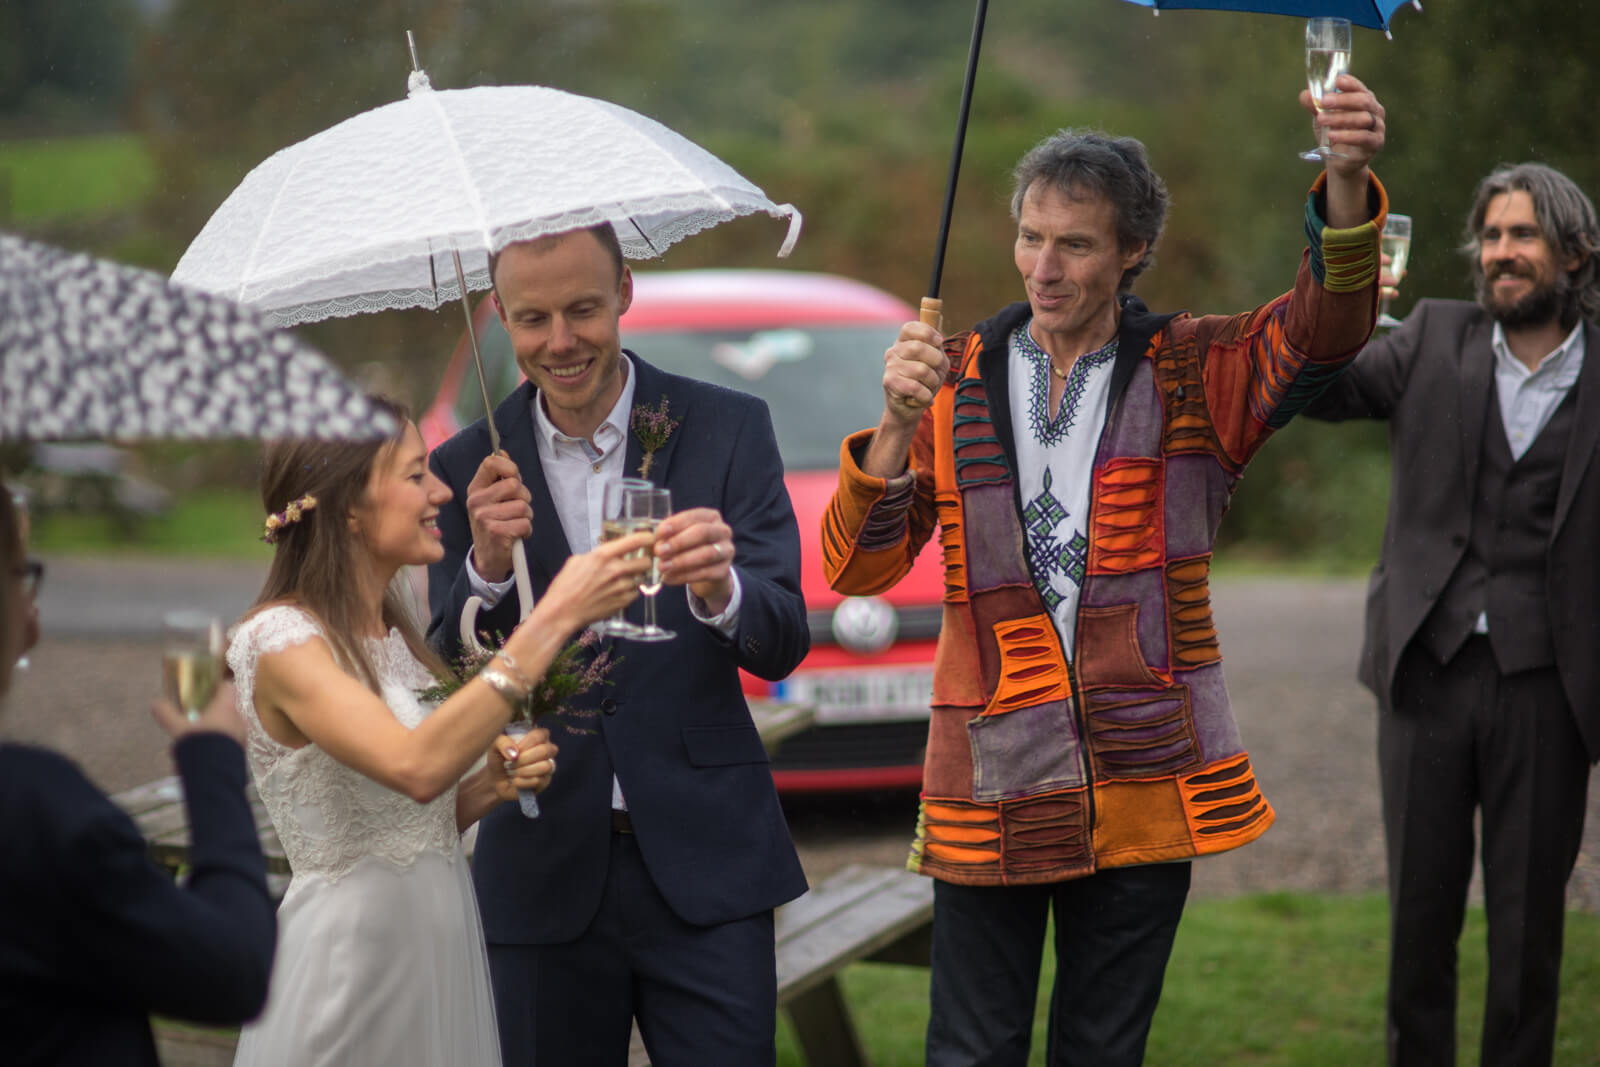 Bride groom and celebrant toast with champagne under umbrellas